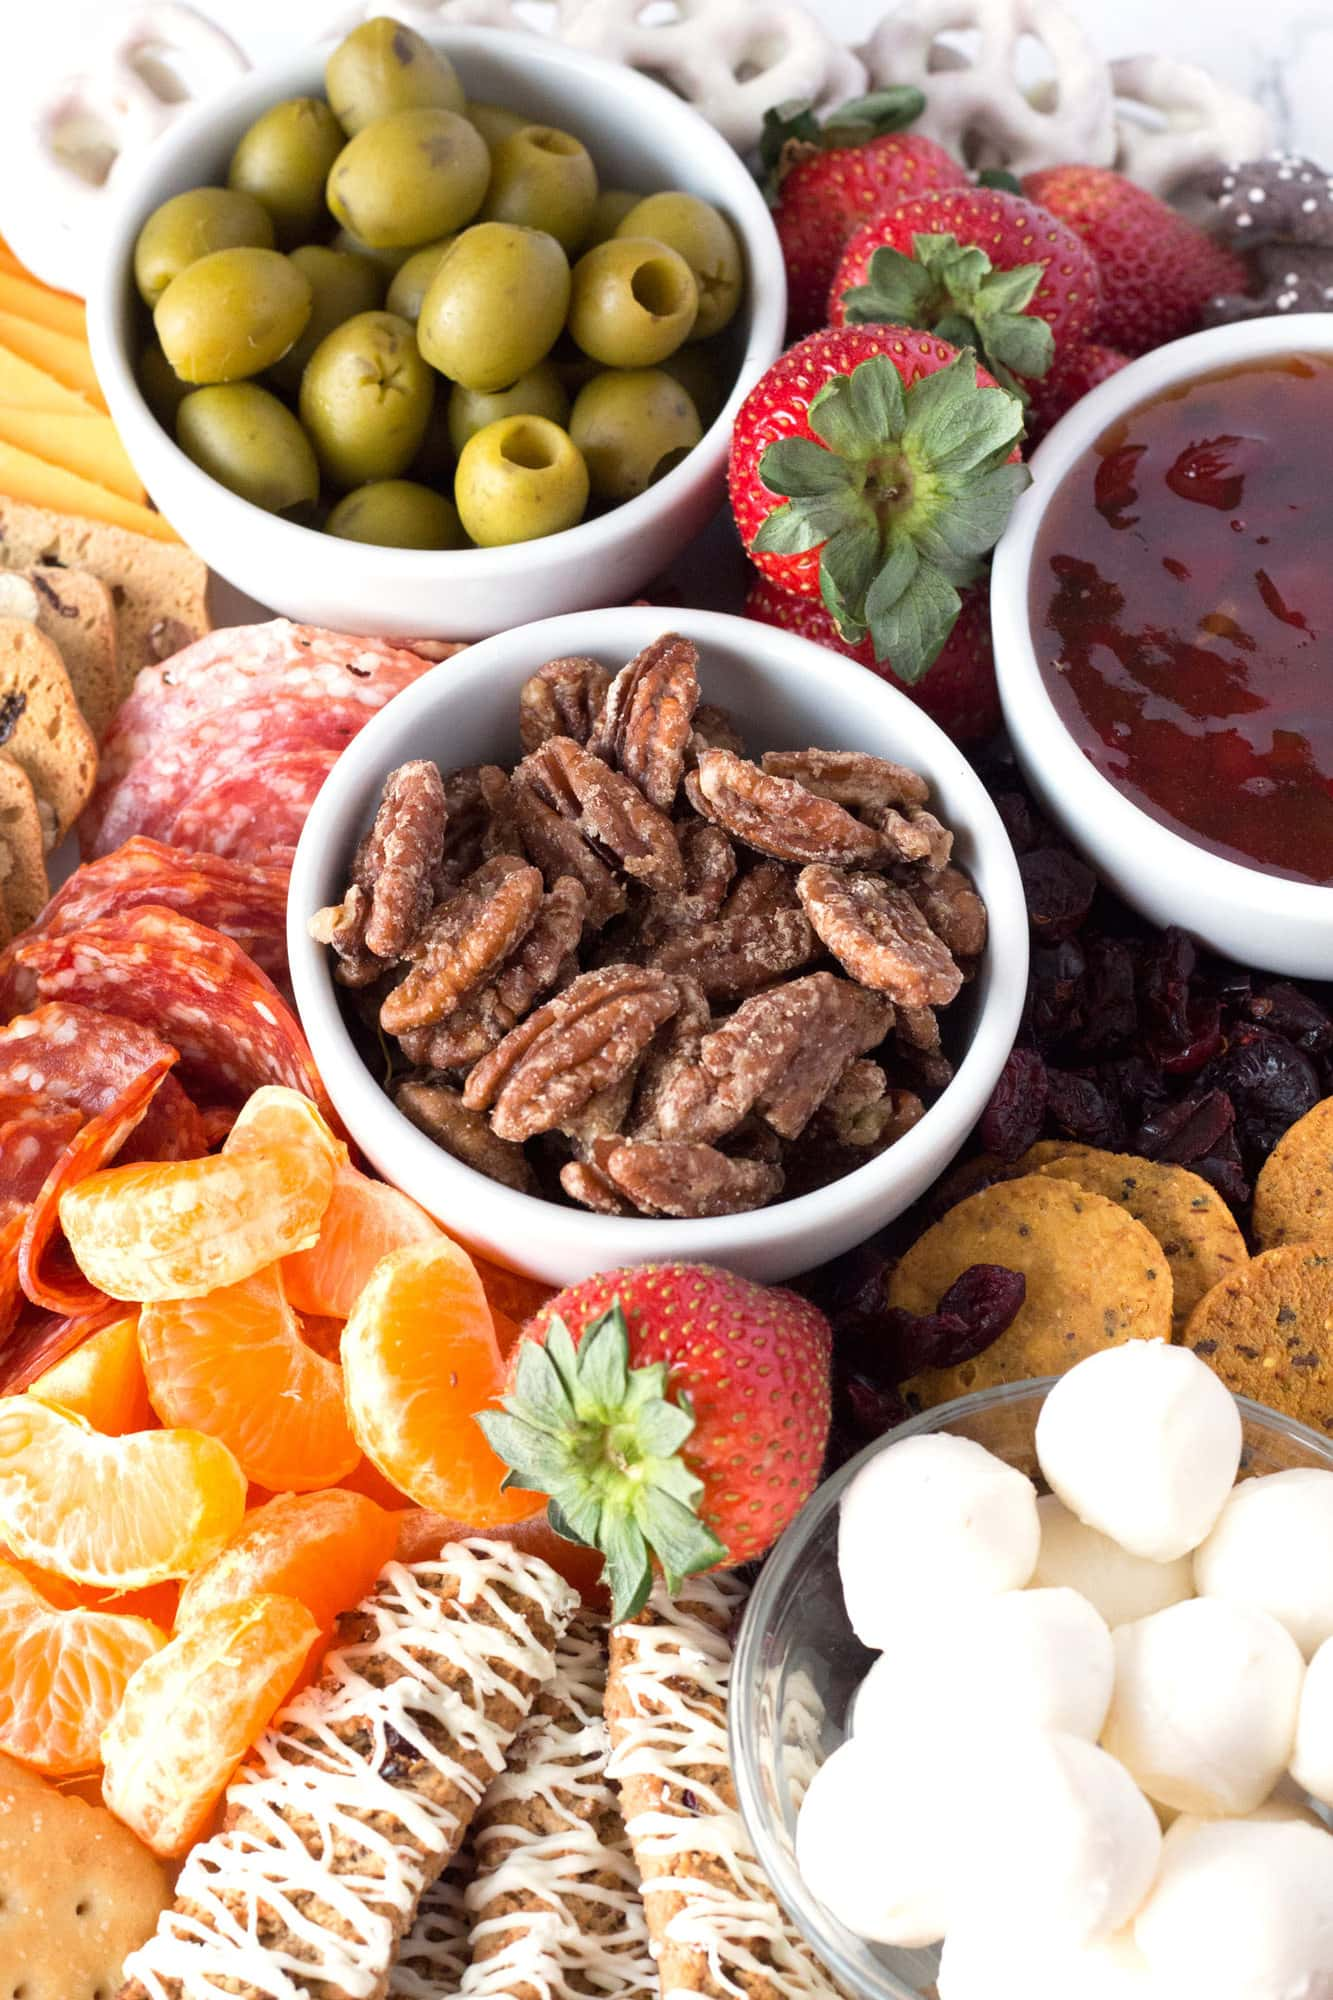 Sweet and salty Christmas snack board with oranges, cheese, cookies, olives, nuts, and other snack ideas.